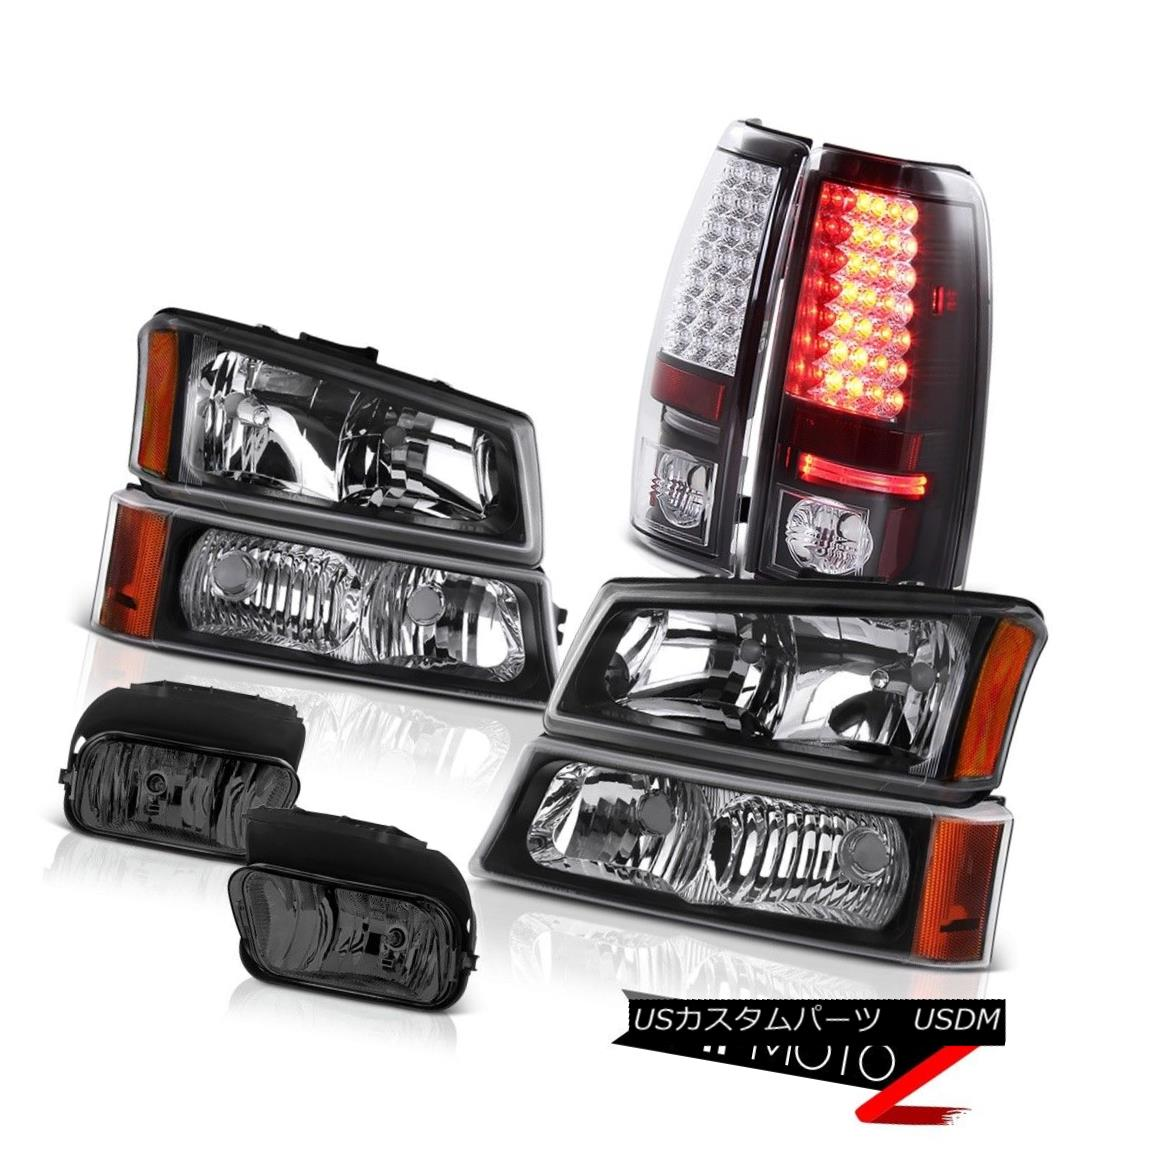 テールライト 2003-2006 Silverado Vortec Max Headlights L.E.D Rear Tail Lights Driving Foglamp 2003-2006 Silverado VortecマックスヘッドライトL.E.DリアテールライトFoglamp